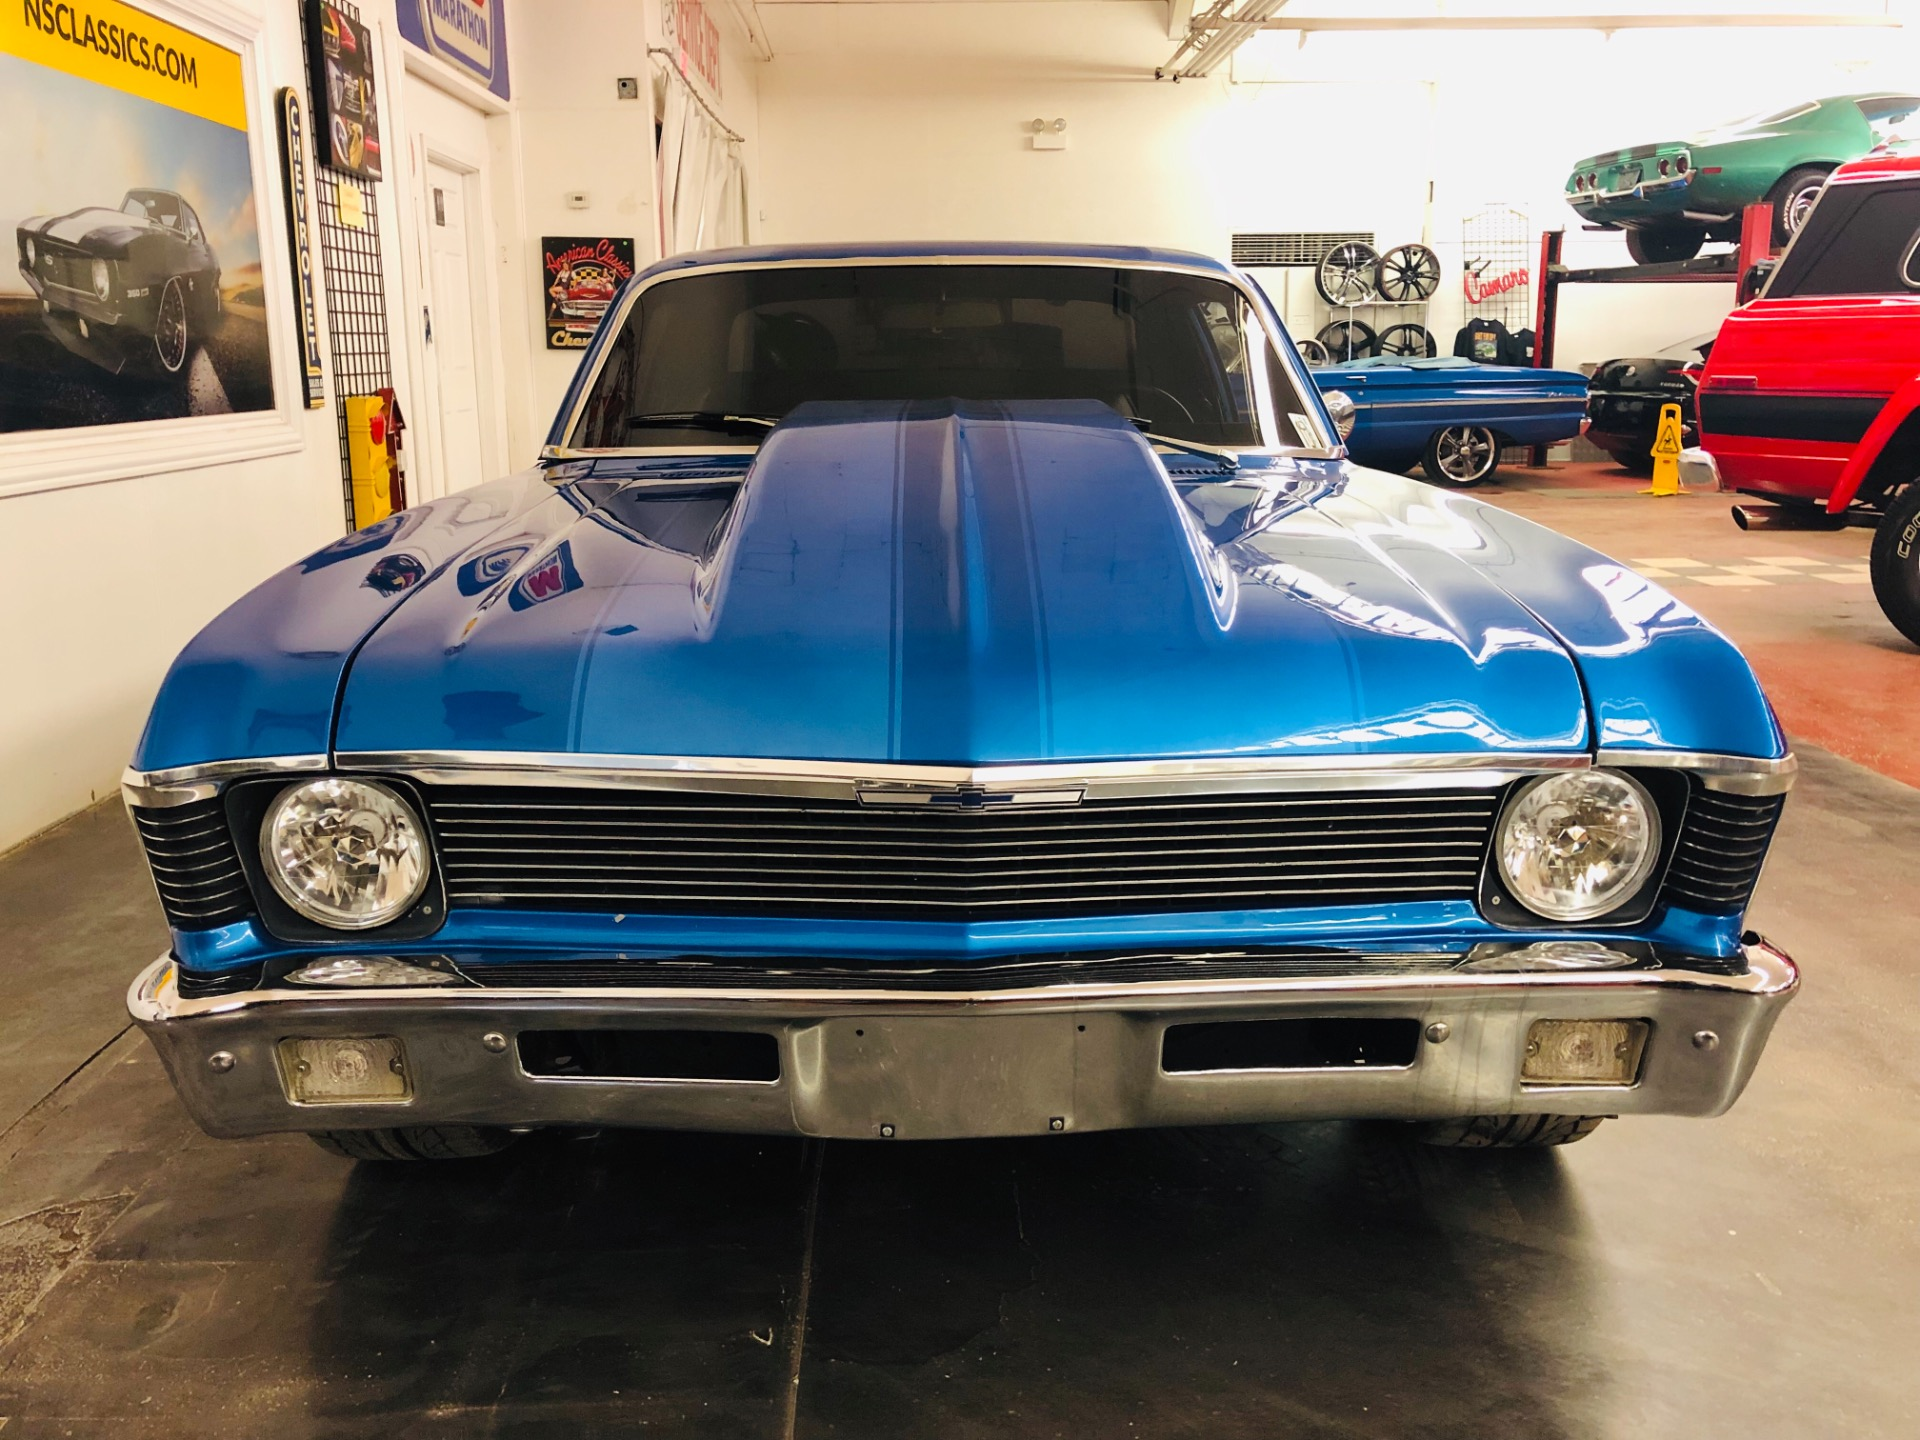 Used 1970 Chevrolet Nova SS-12BOLT REAR-383 SBC-GREAT CLASSIC CAR-PRO TOUR LOOK- | Mundelein, IL